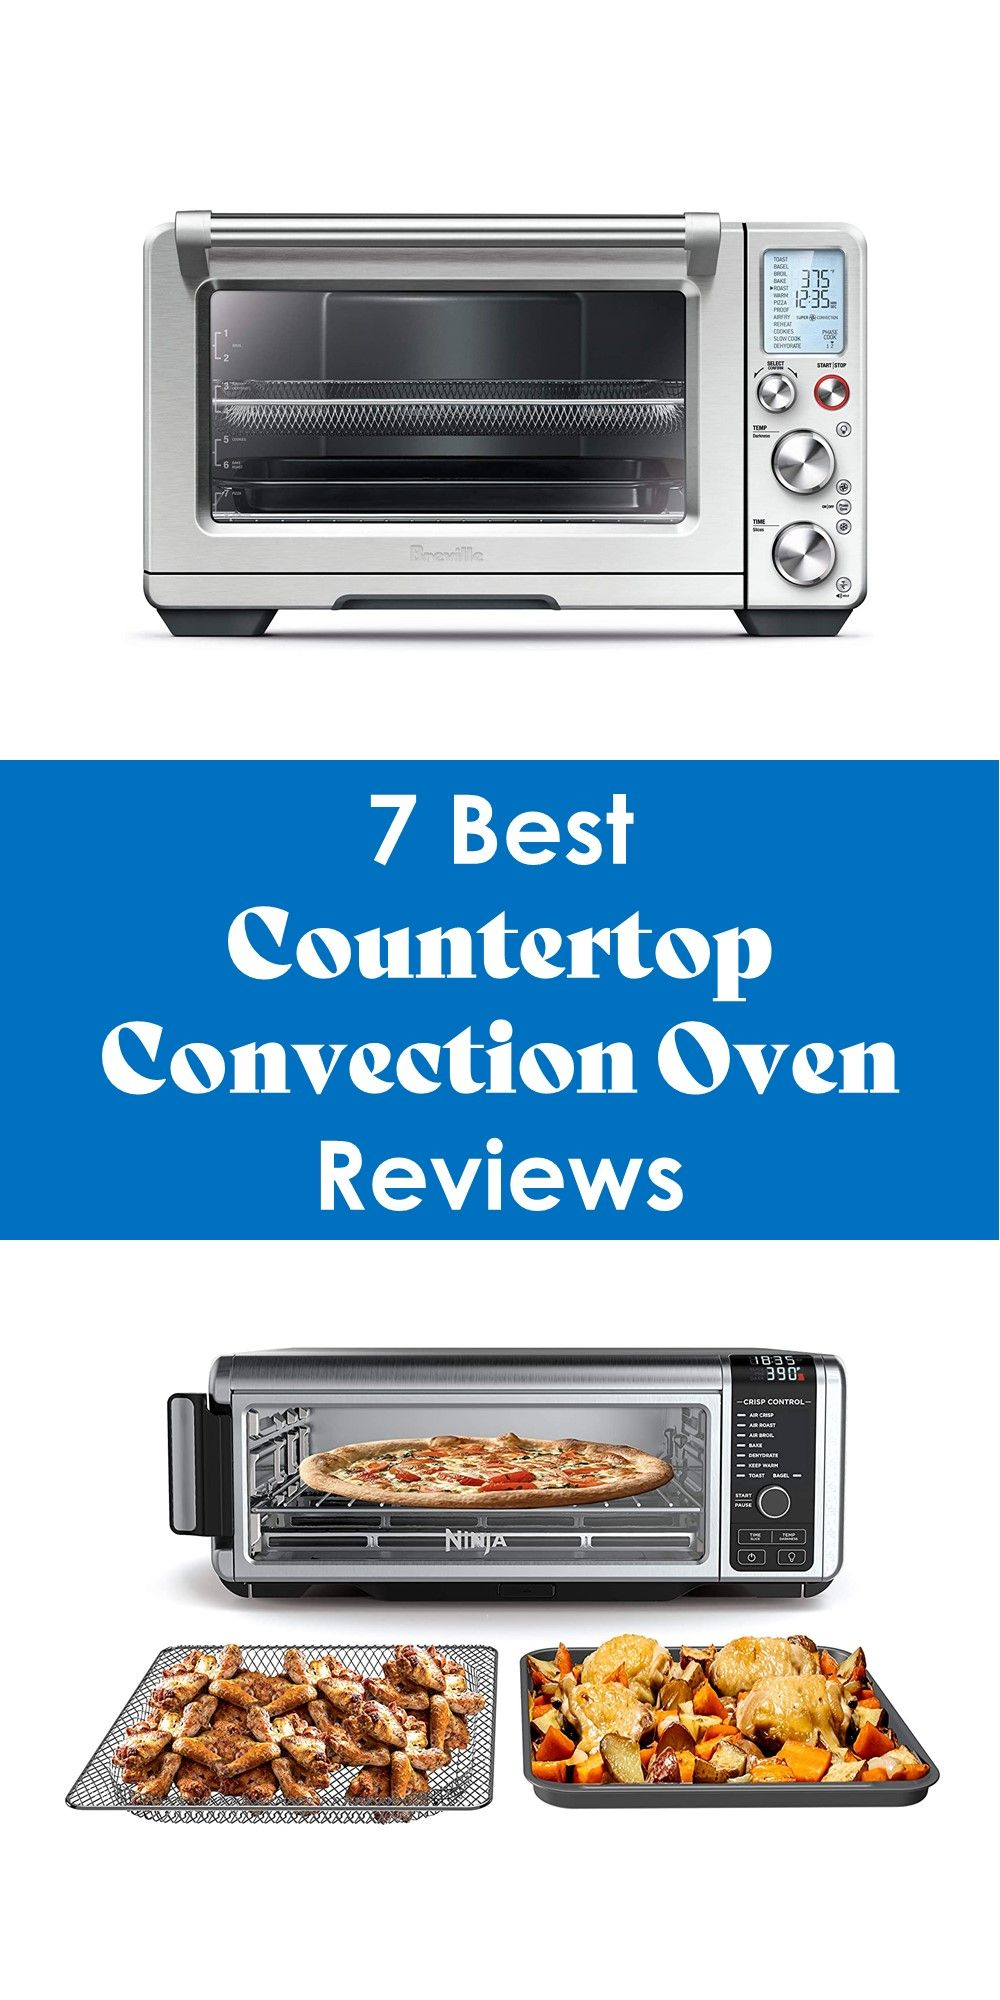 7 Best Countertop Convection Oven Reviews Update 2020 Countertop Convection Oven Oven Reviews Countertops